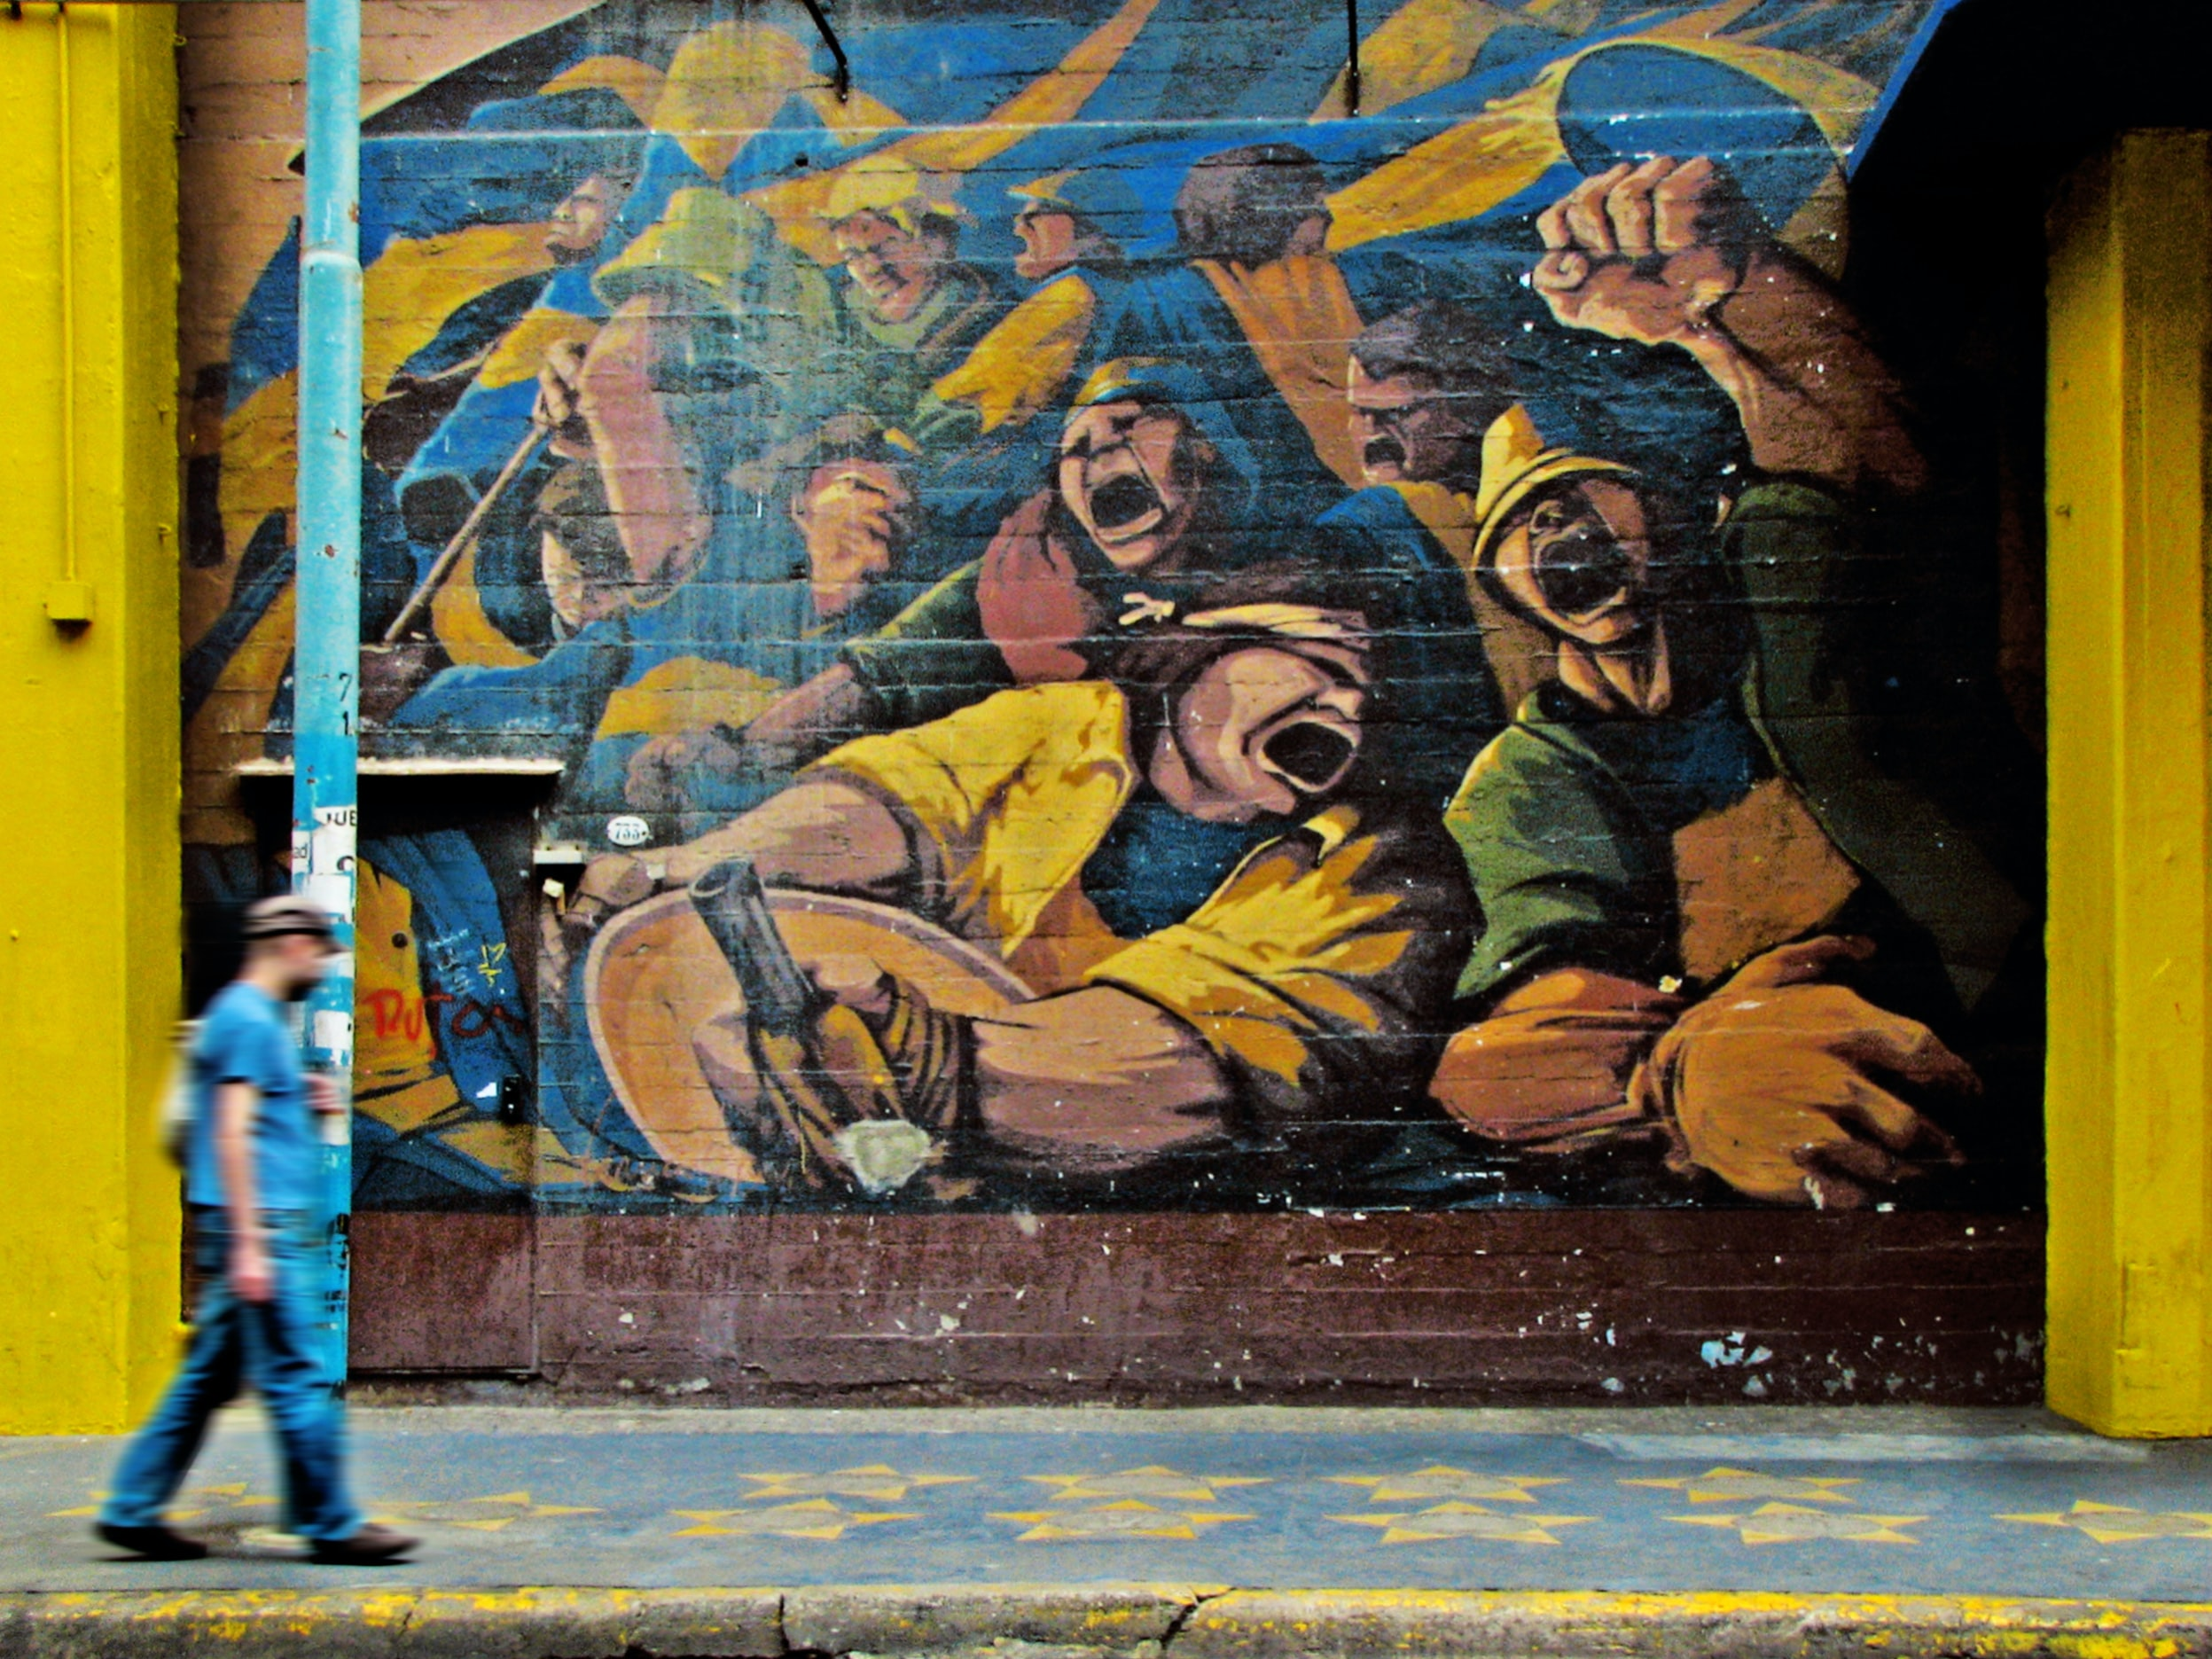 Man walking on sidewalk with lamppost in front of graffiti of passionate workers, La Boca